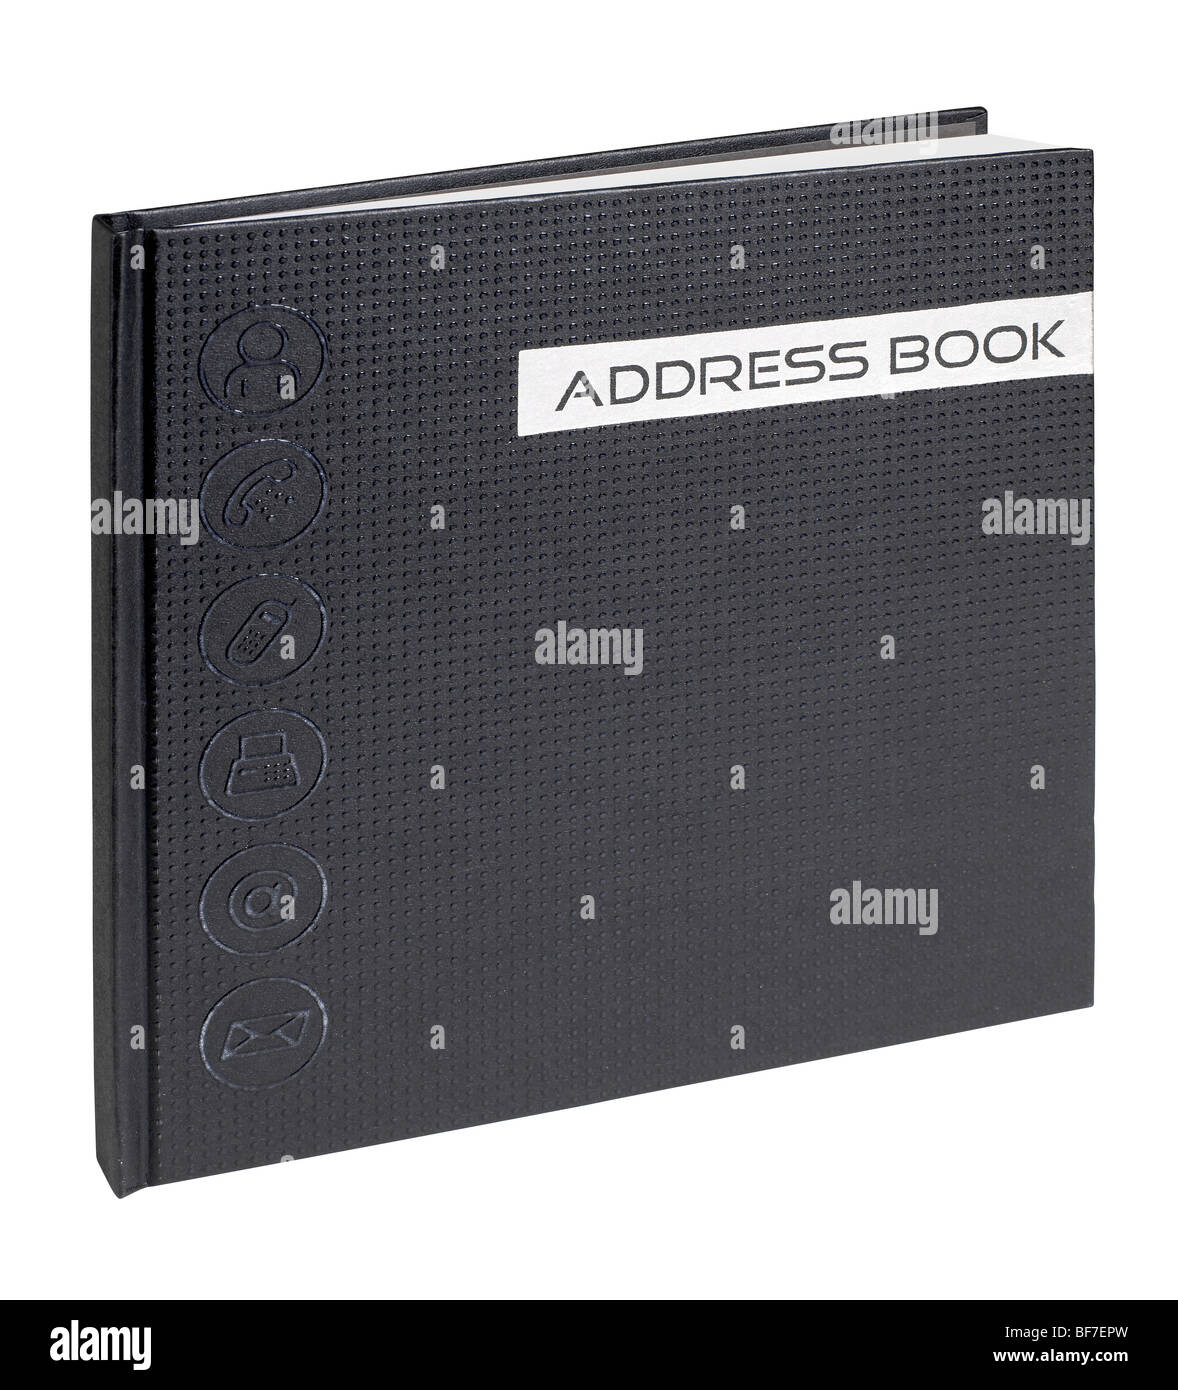 Black hard cover bound address book - Stock Image